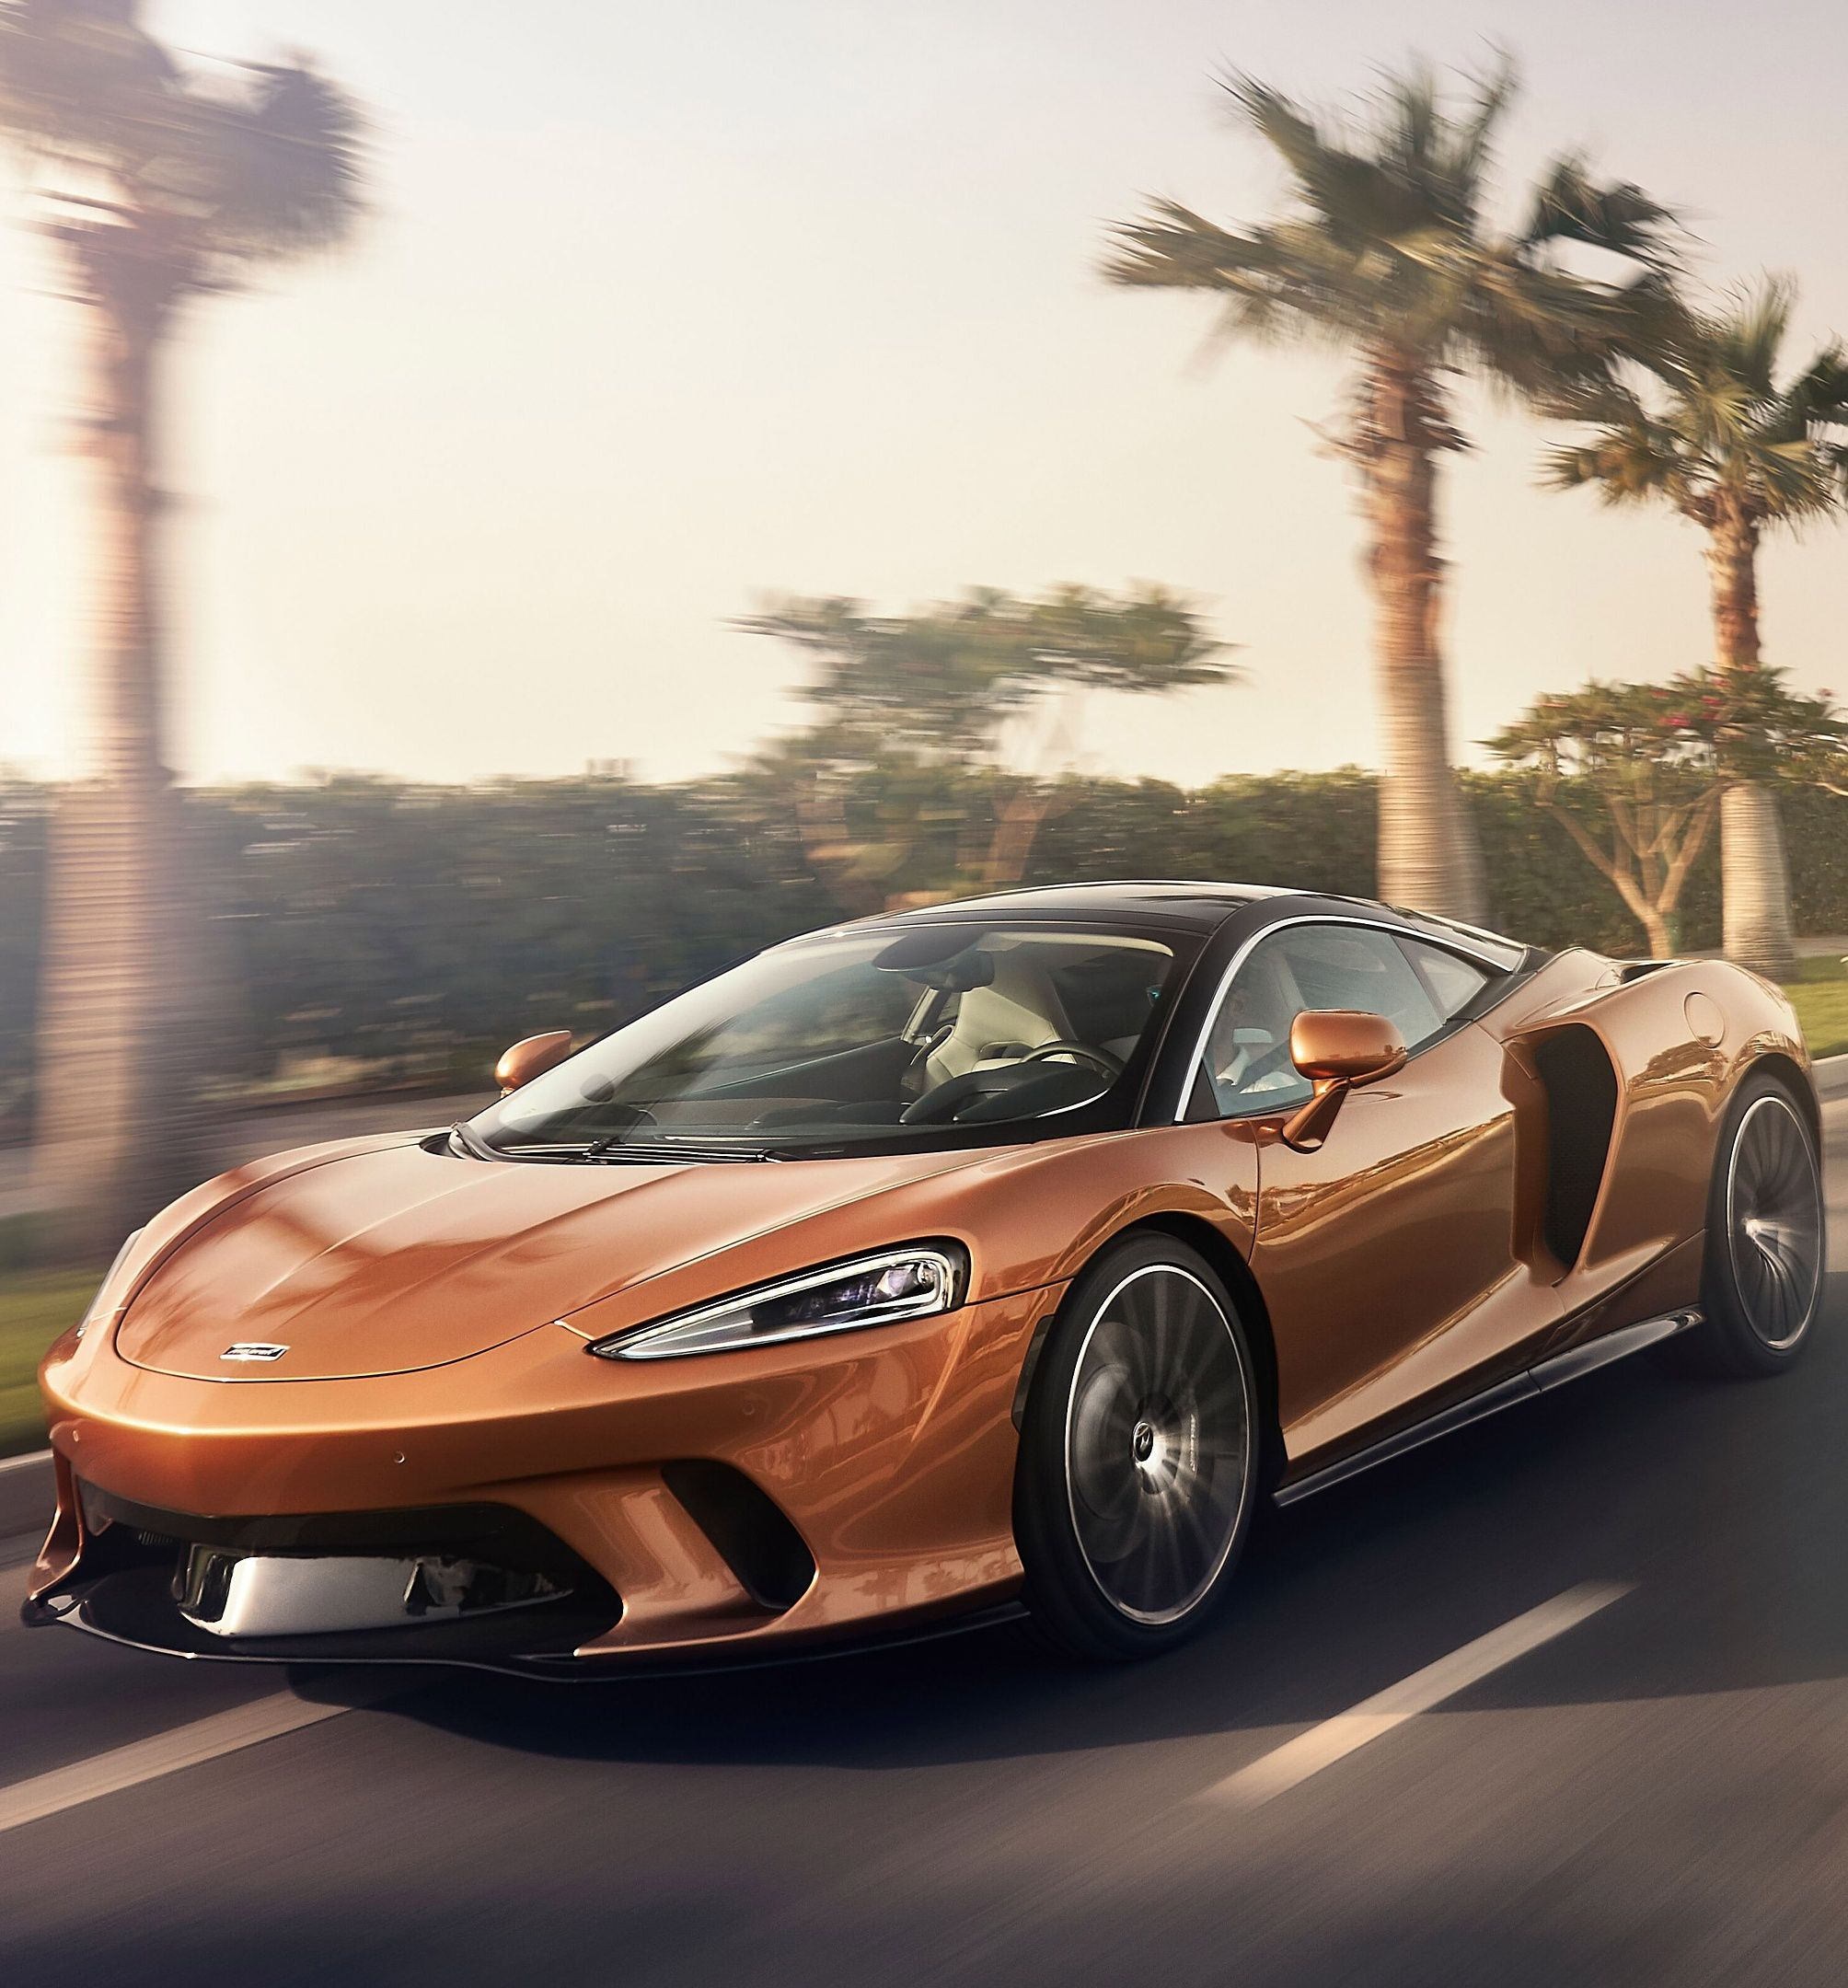 2020 Mclaren Gt V8 Car And Motorcycle Design Mclaren Cars Super Cars